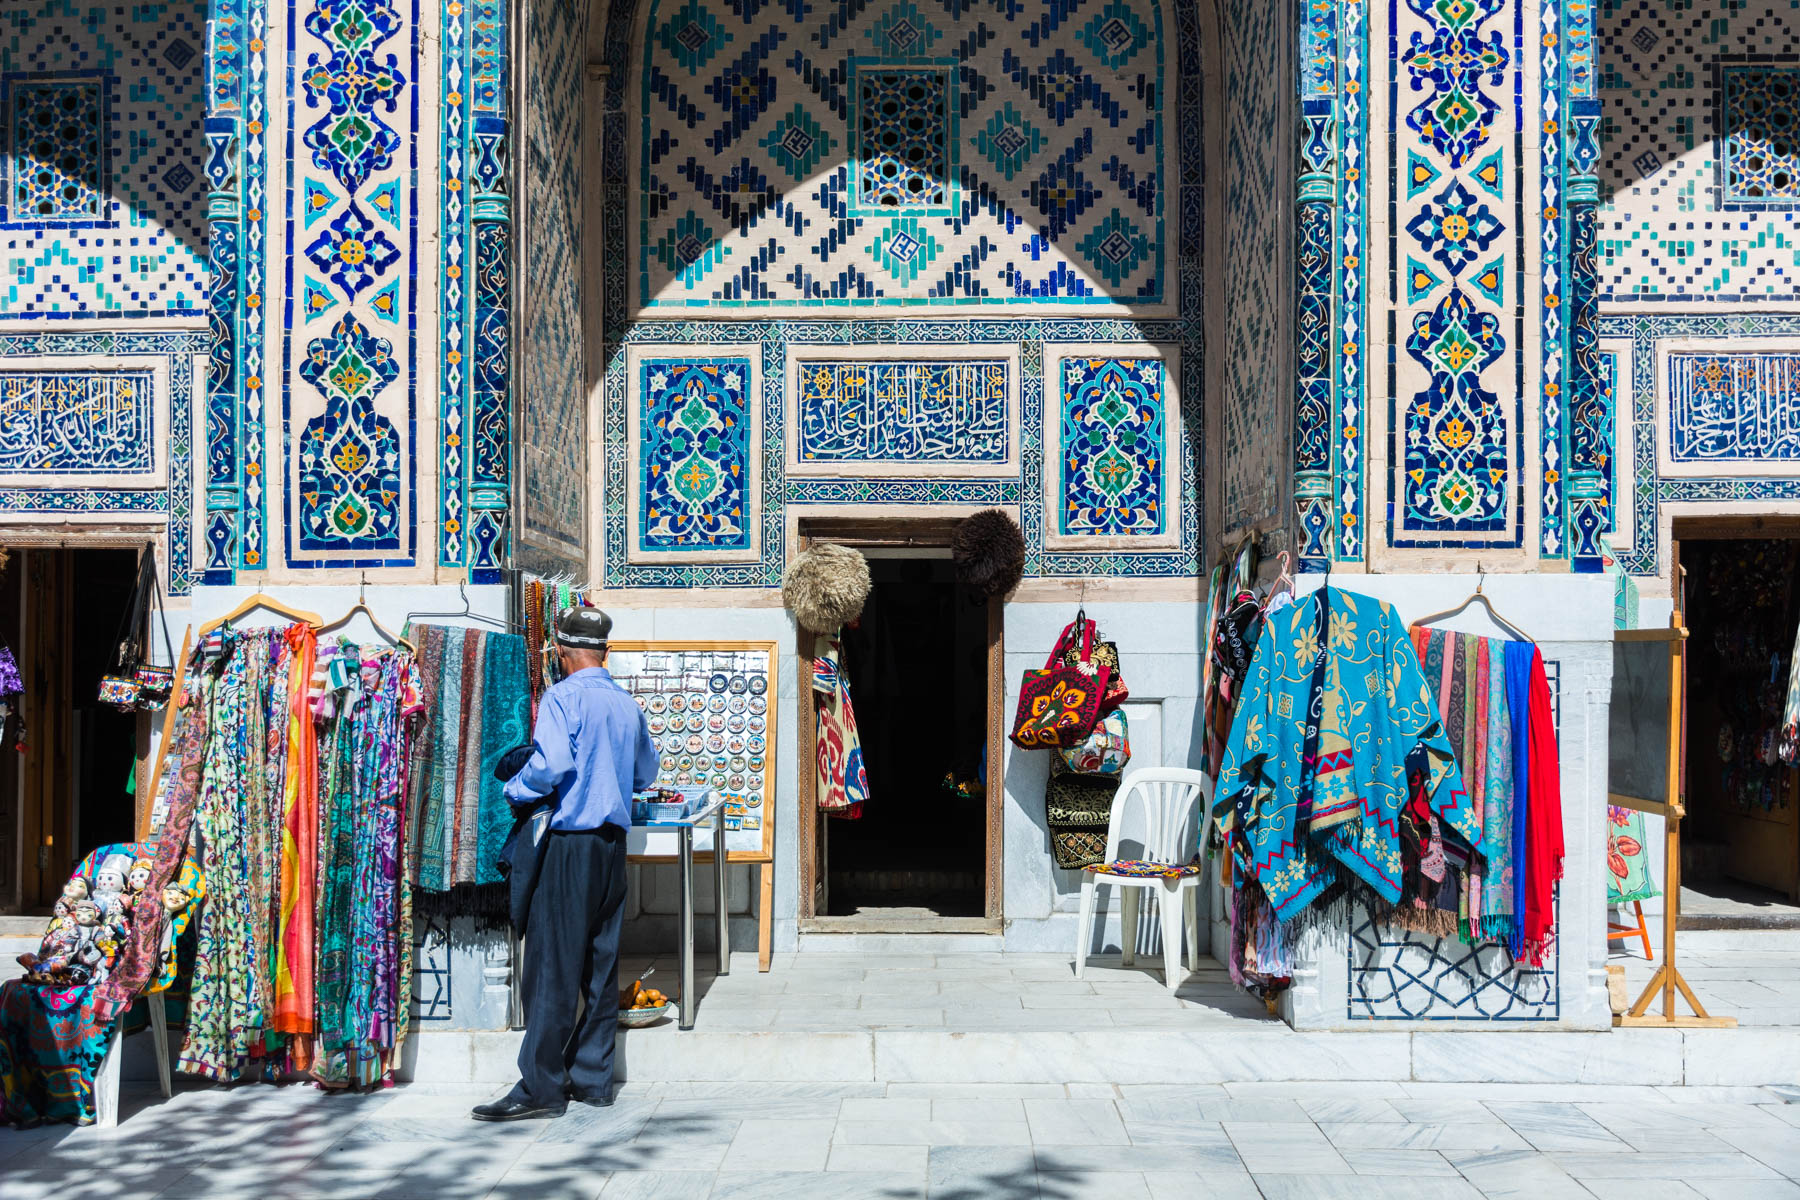 Why you need to see sunrise in Uzbekistan - A souvenir stall ruining the Registan in Uzbekistan - Lost With Purpose